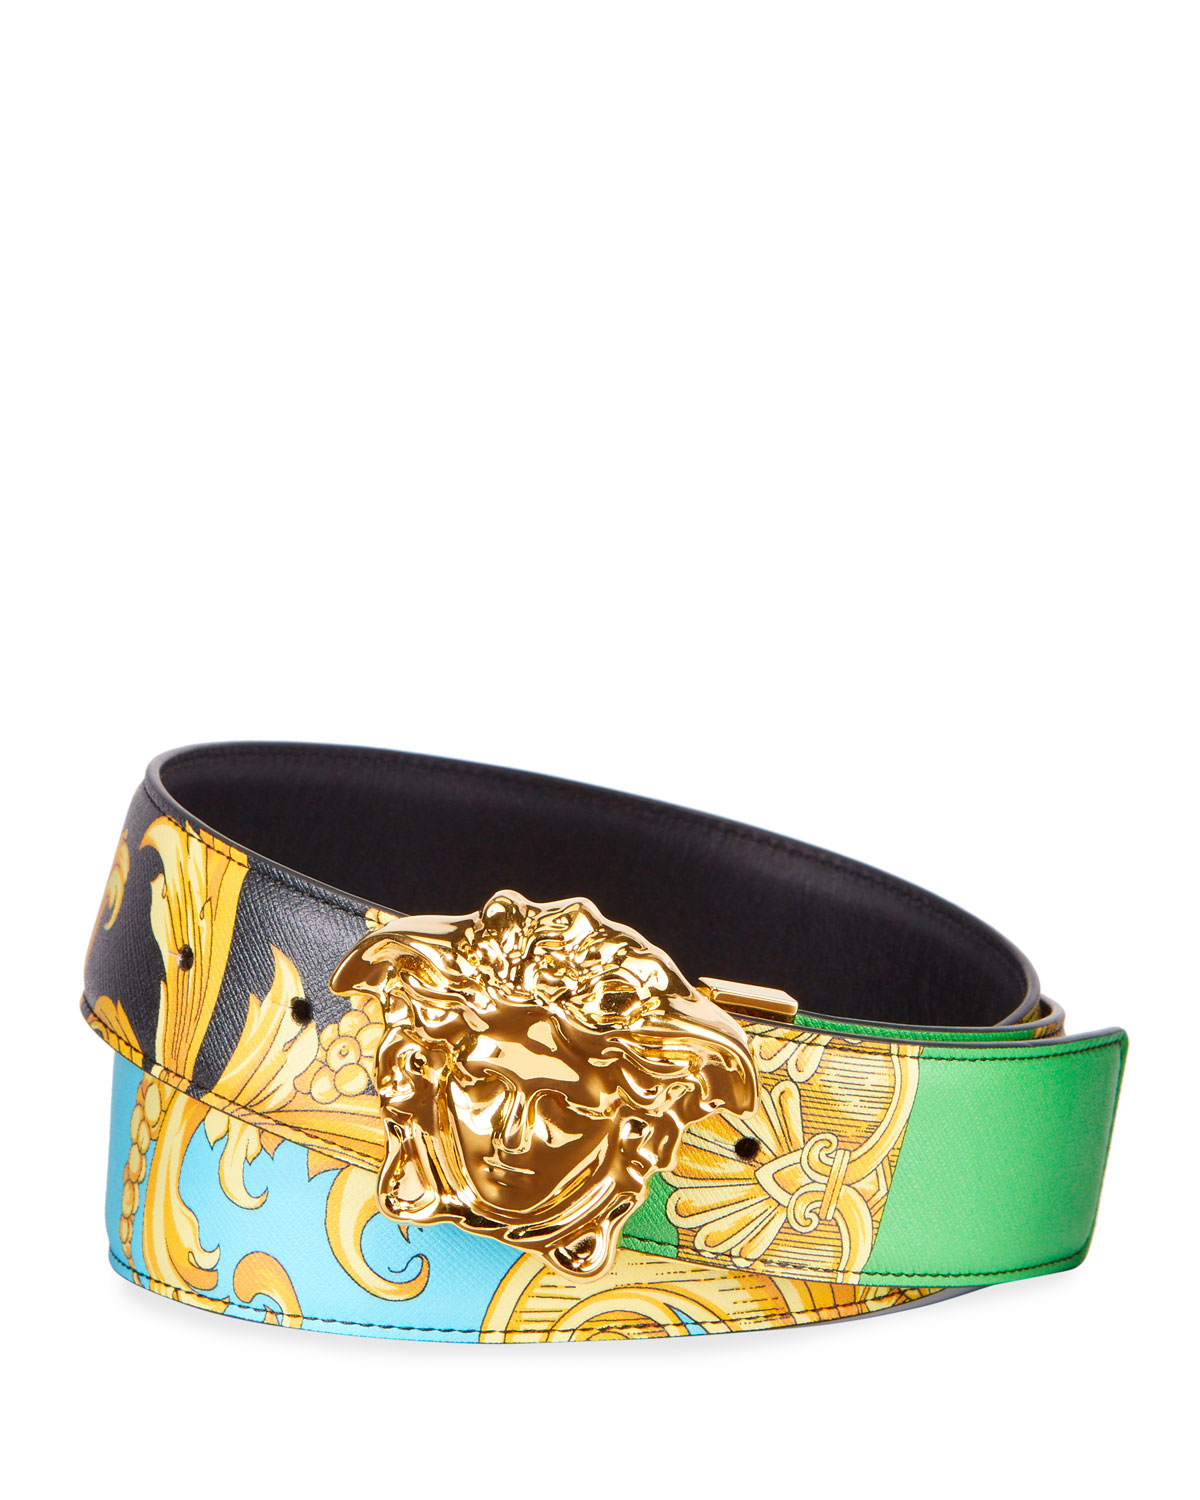 Versace Belt Men's Barocco-Print Leather Belt with Medusa Buckle